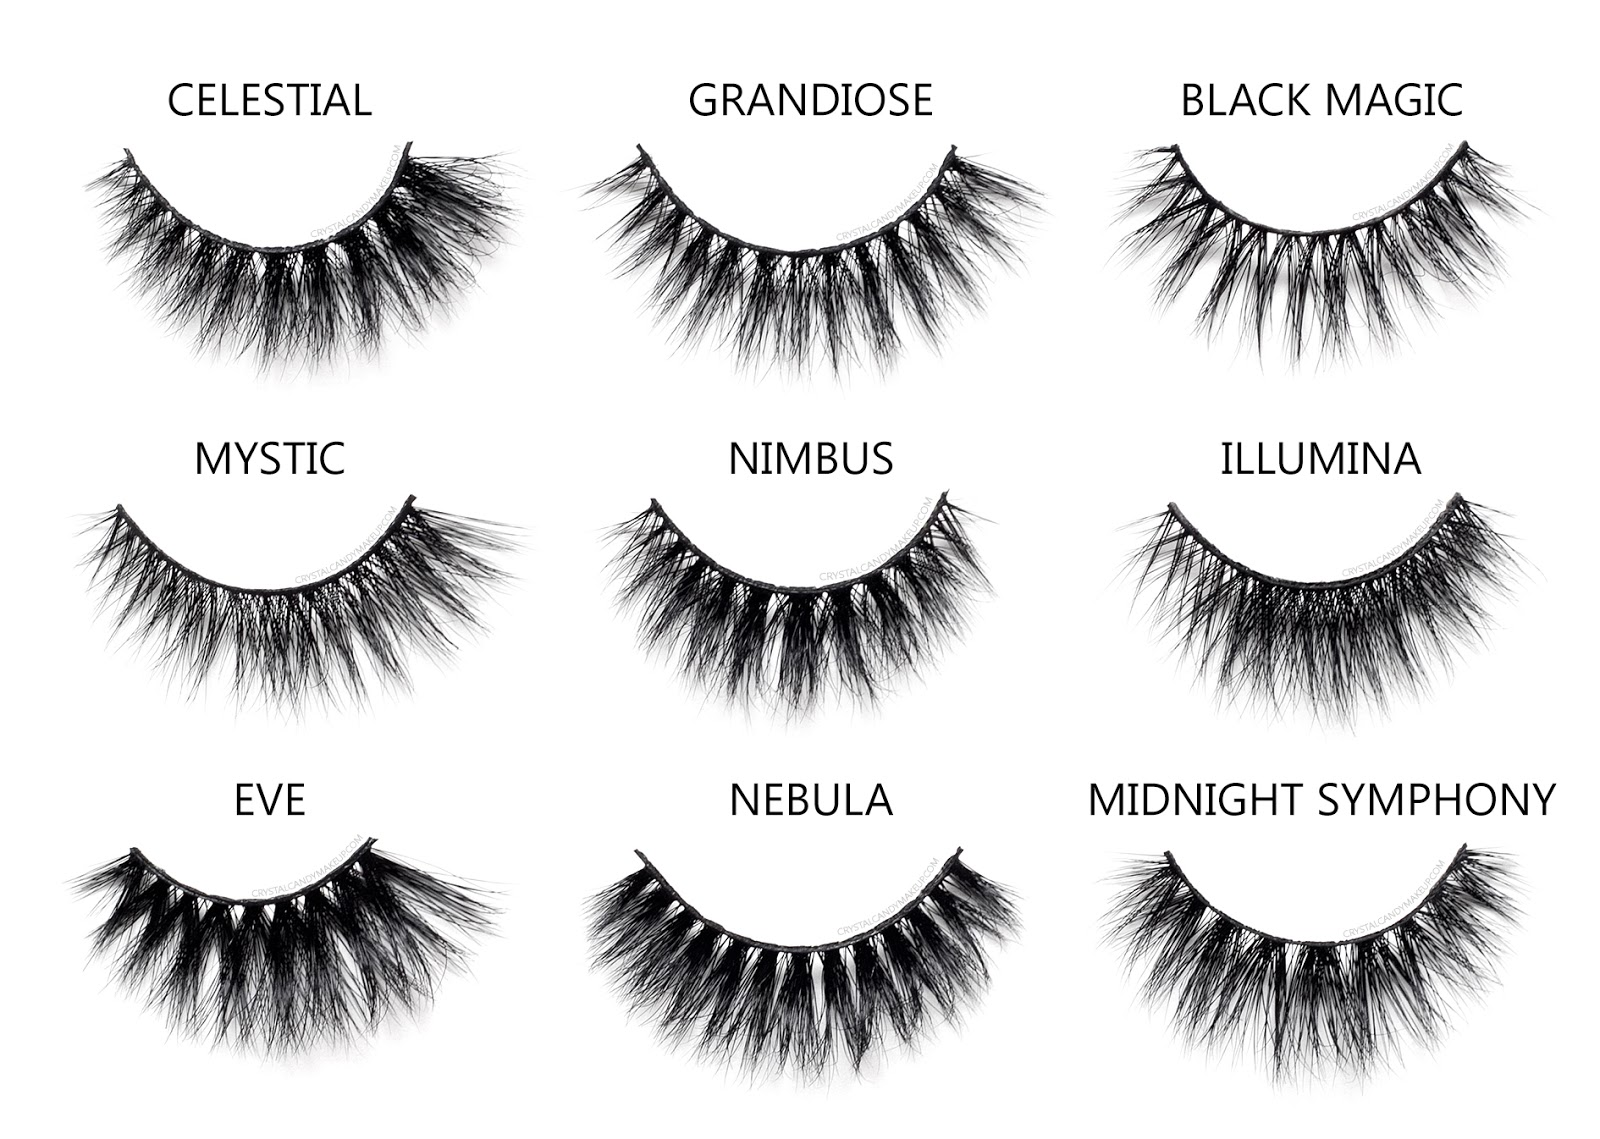 Esqido Mink Lashes Noire Collection Mystic Grandiose Illumina Eve Celestial Midnight Symphony Black Magic Nebula Nimbus Comparison